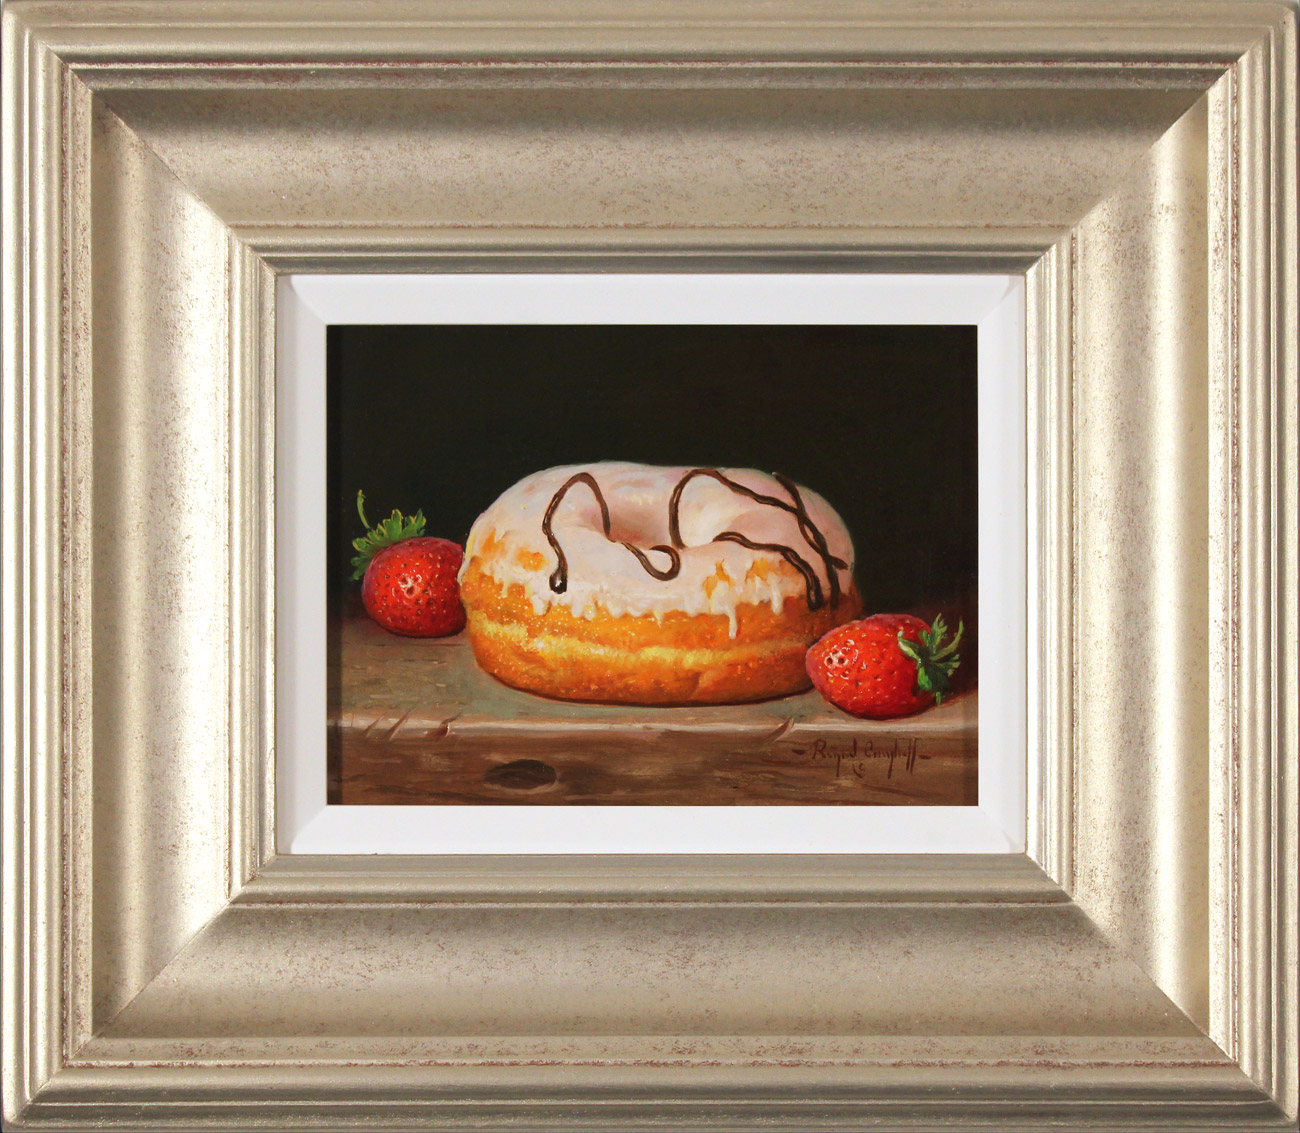 Raymond Campbell, Original oil painting on panel, Sweet Treat , click to enlarge